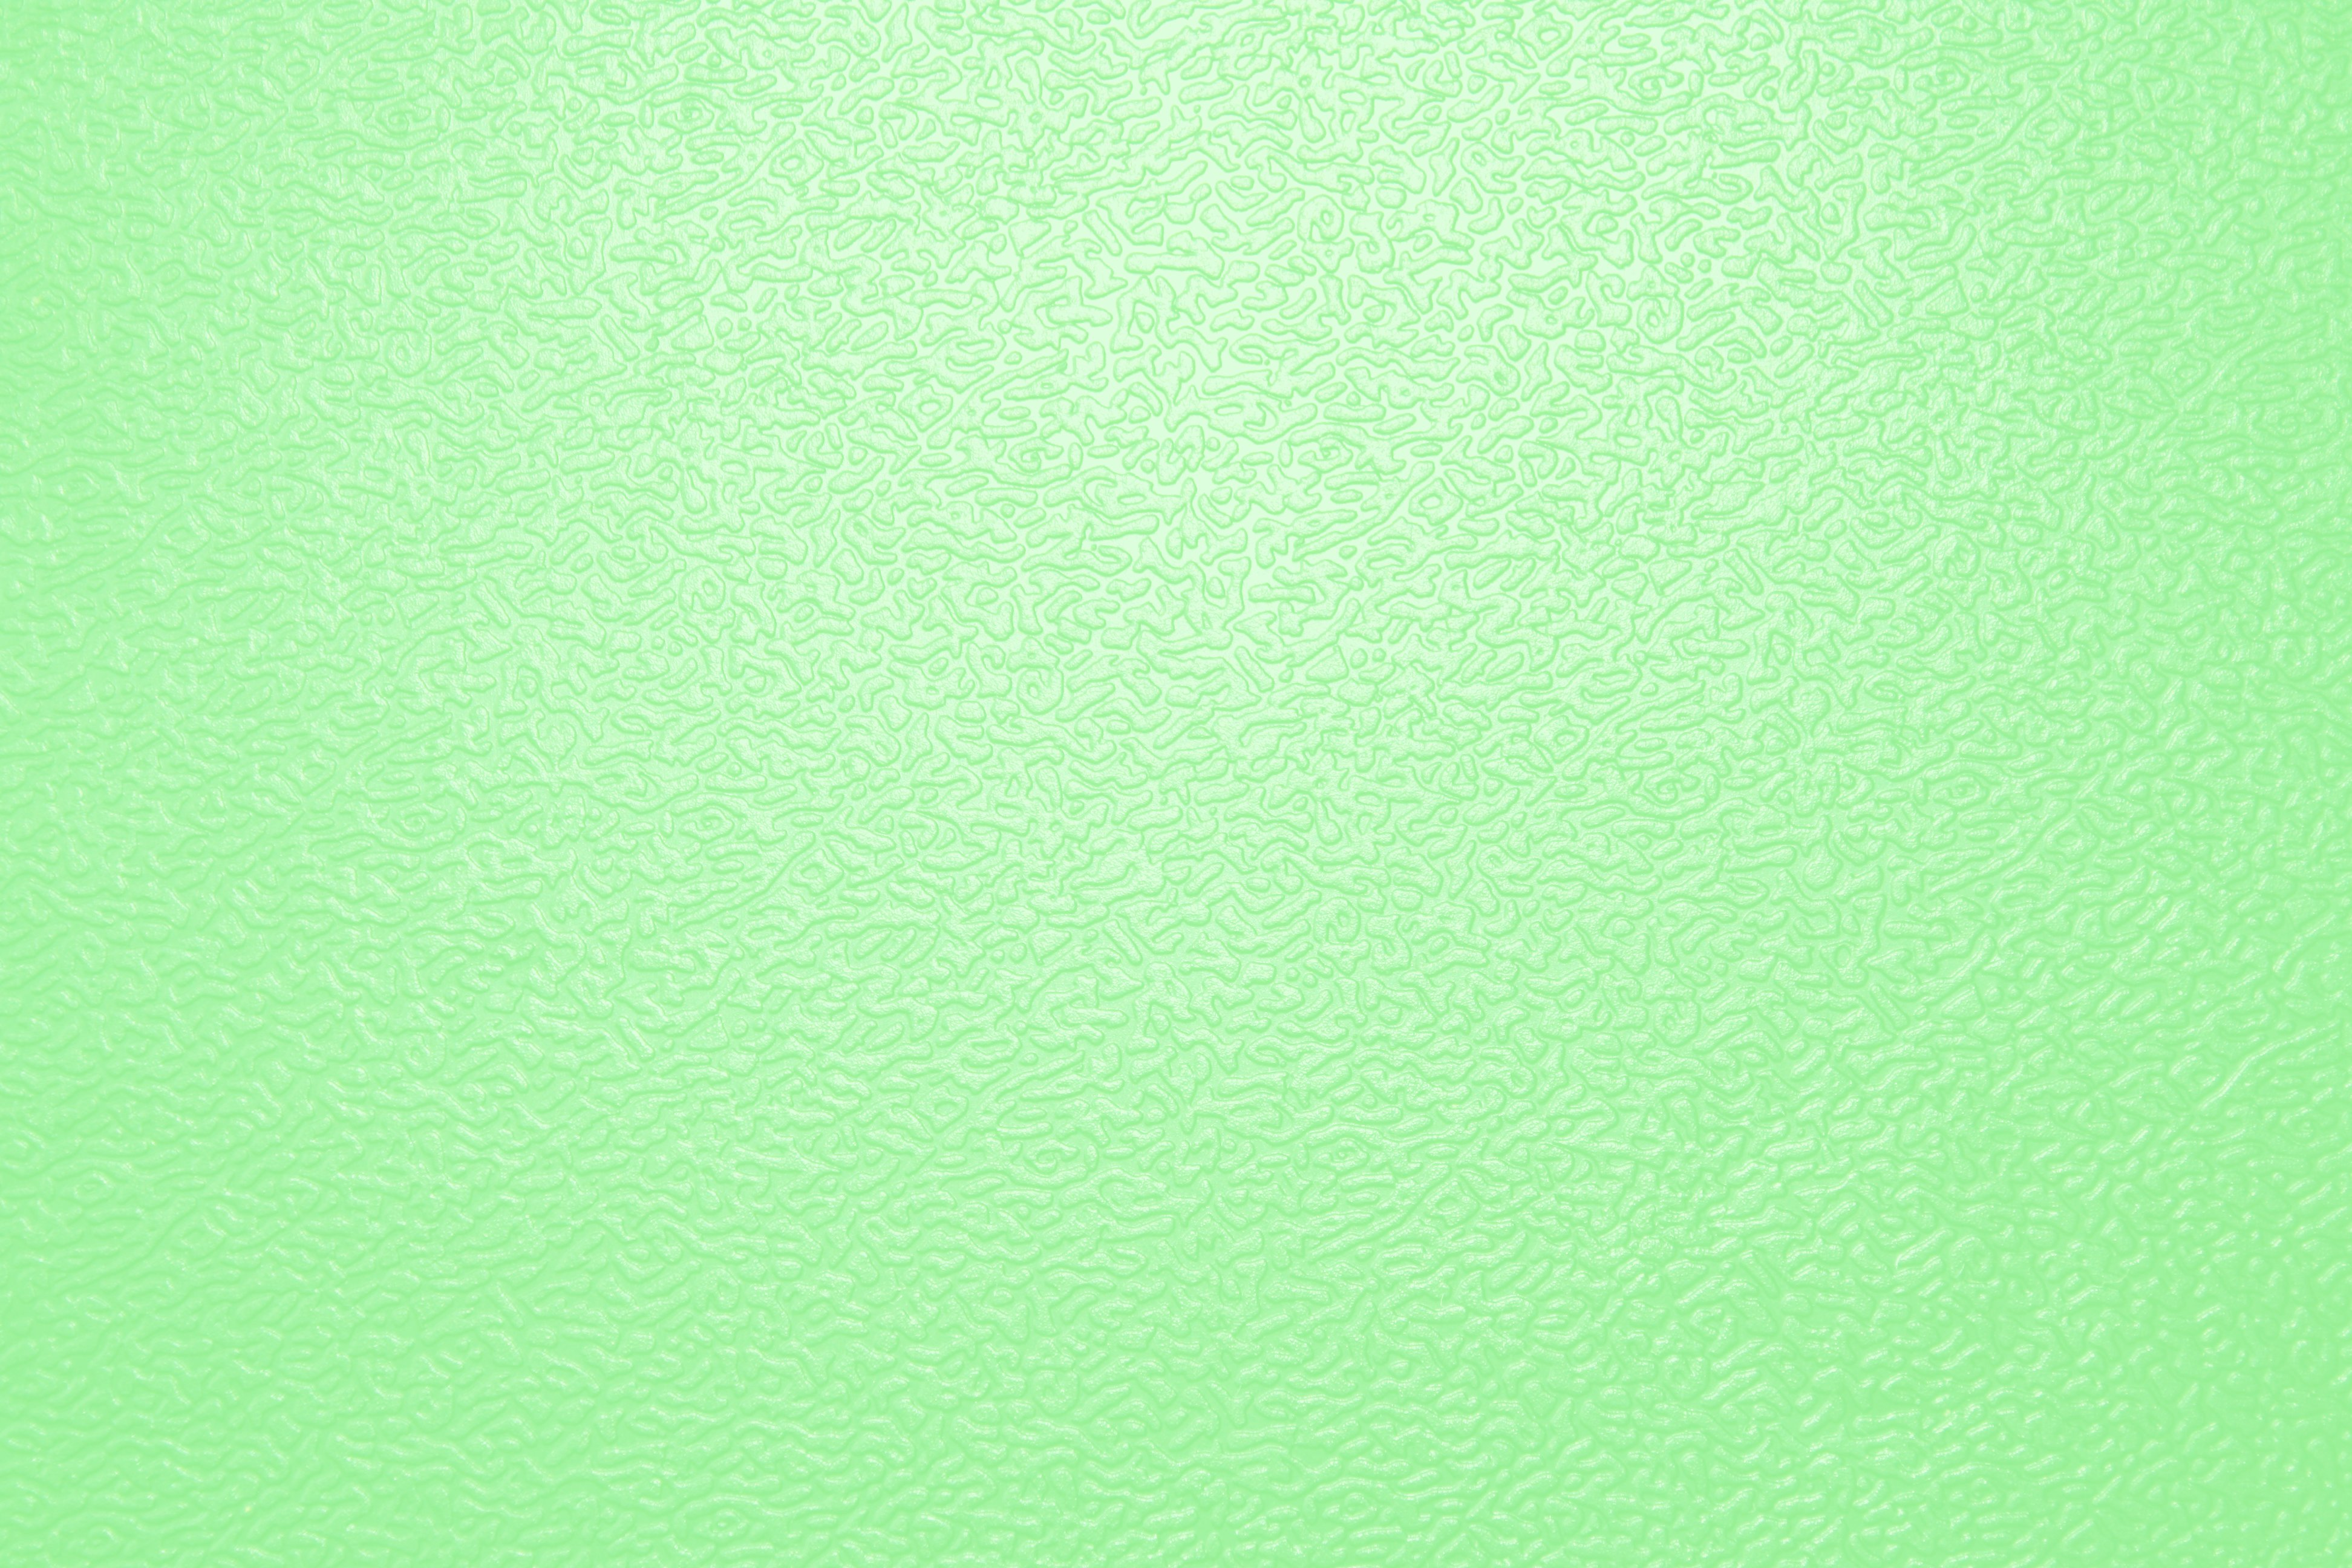 Textured Light Green Plastic Close Up Picture Free